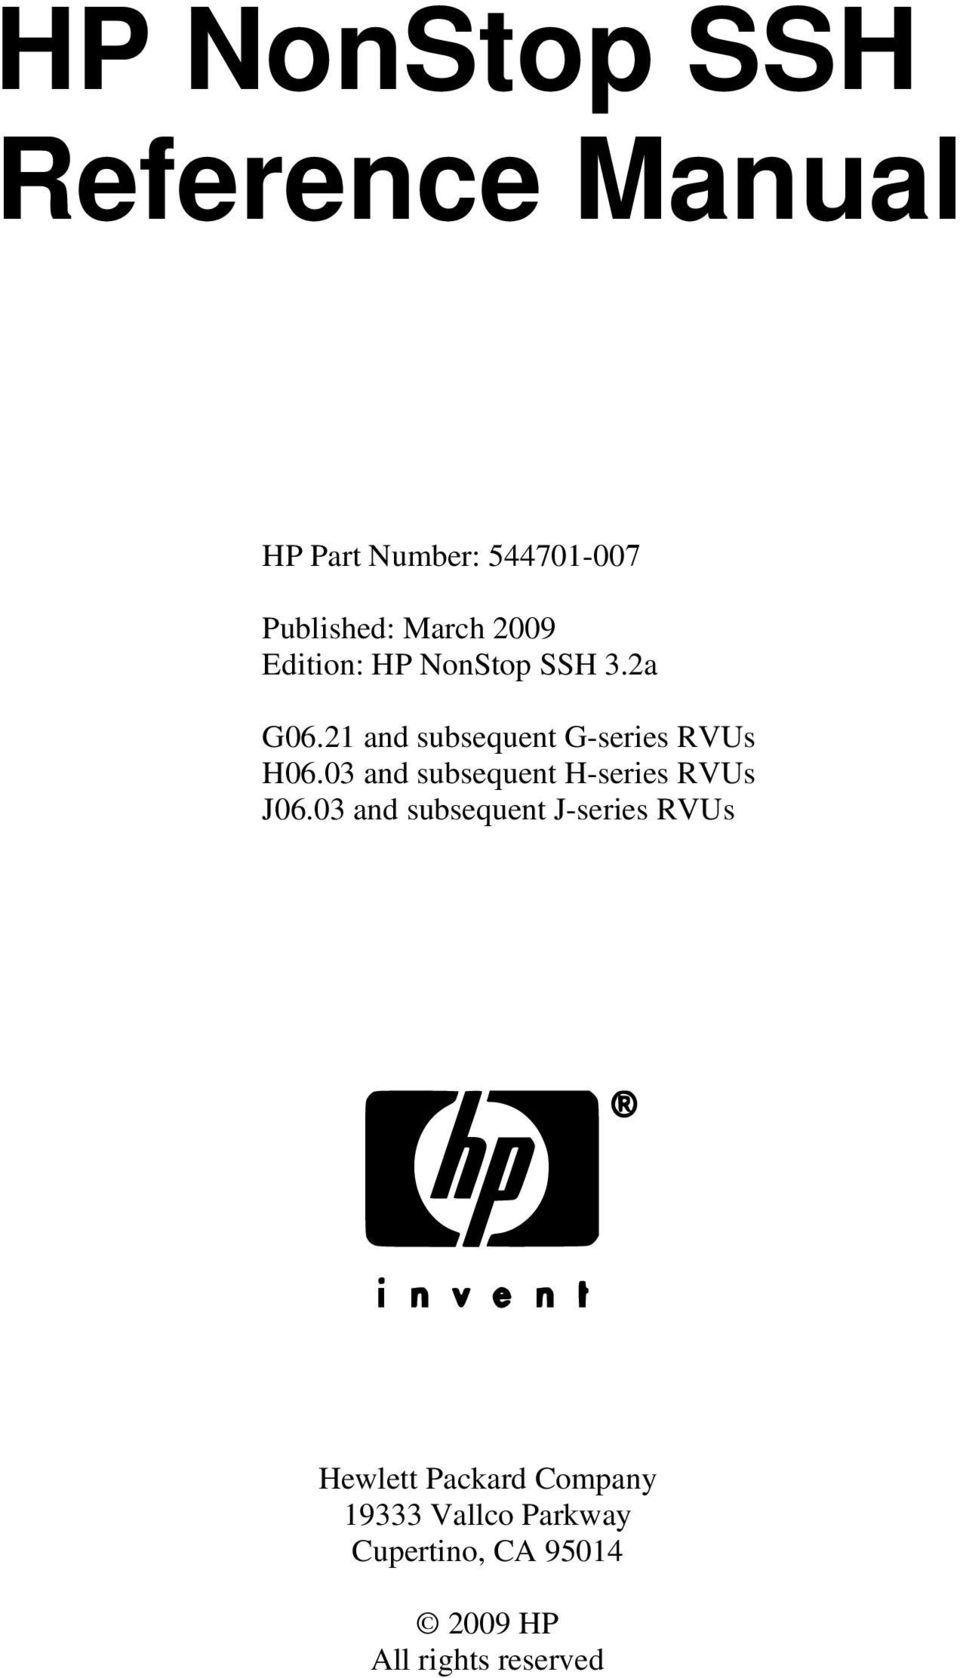 Tcp/ip configuration and management manual.